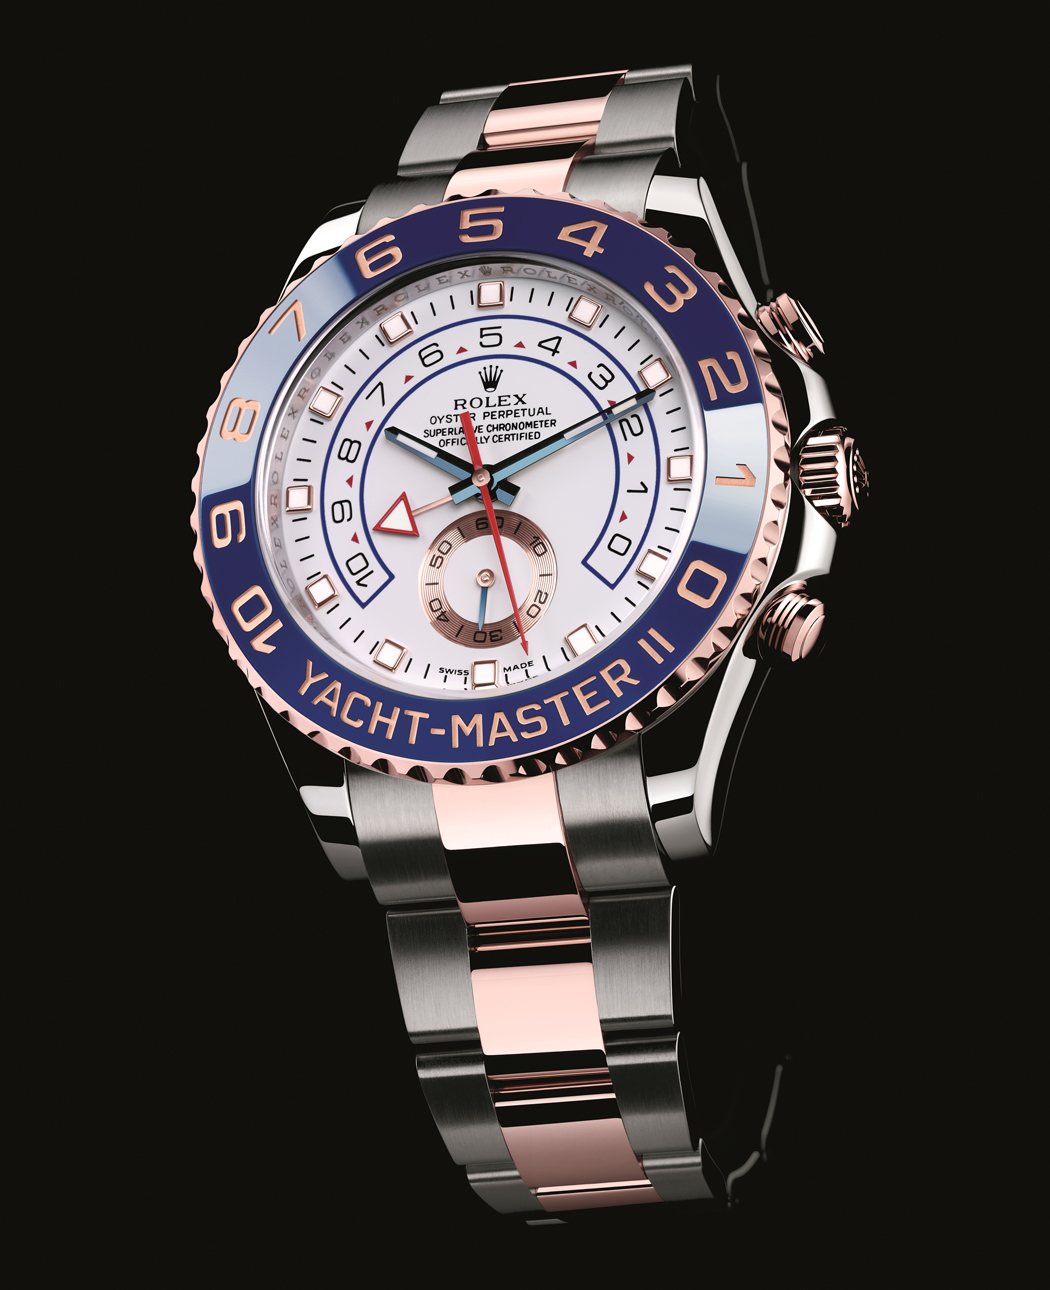 OYSTER PERPETUAL YACHT-MASTER II de Rolex